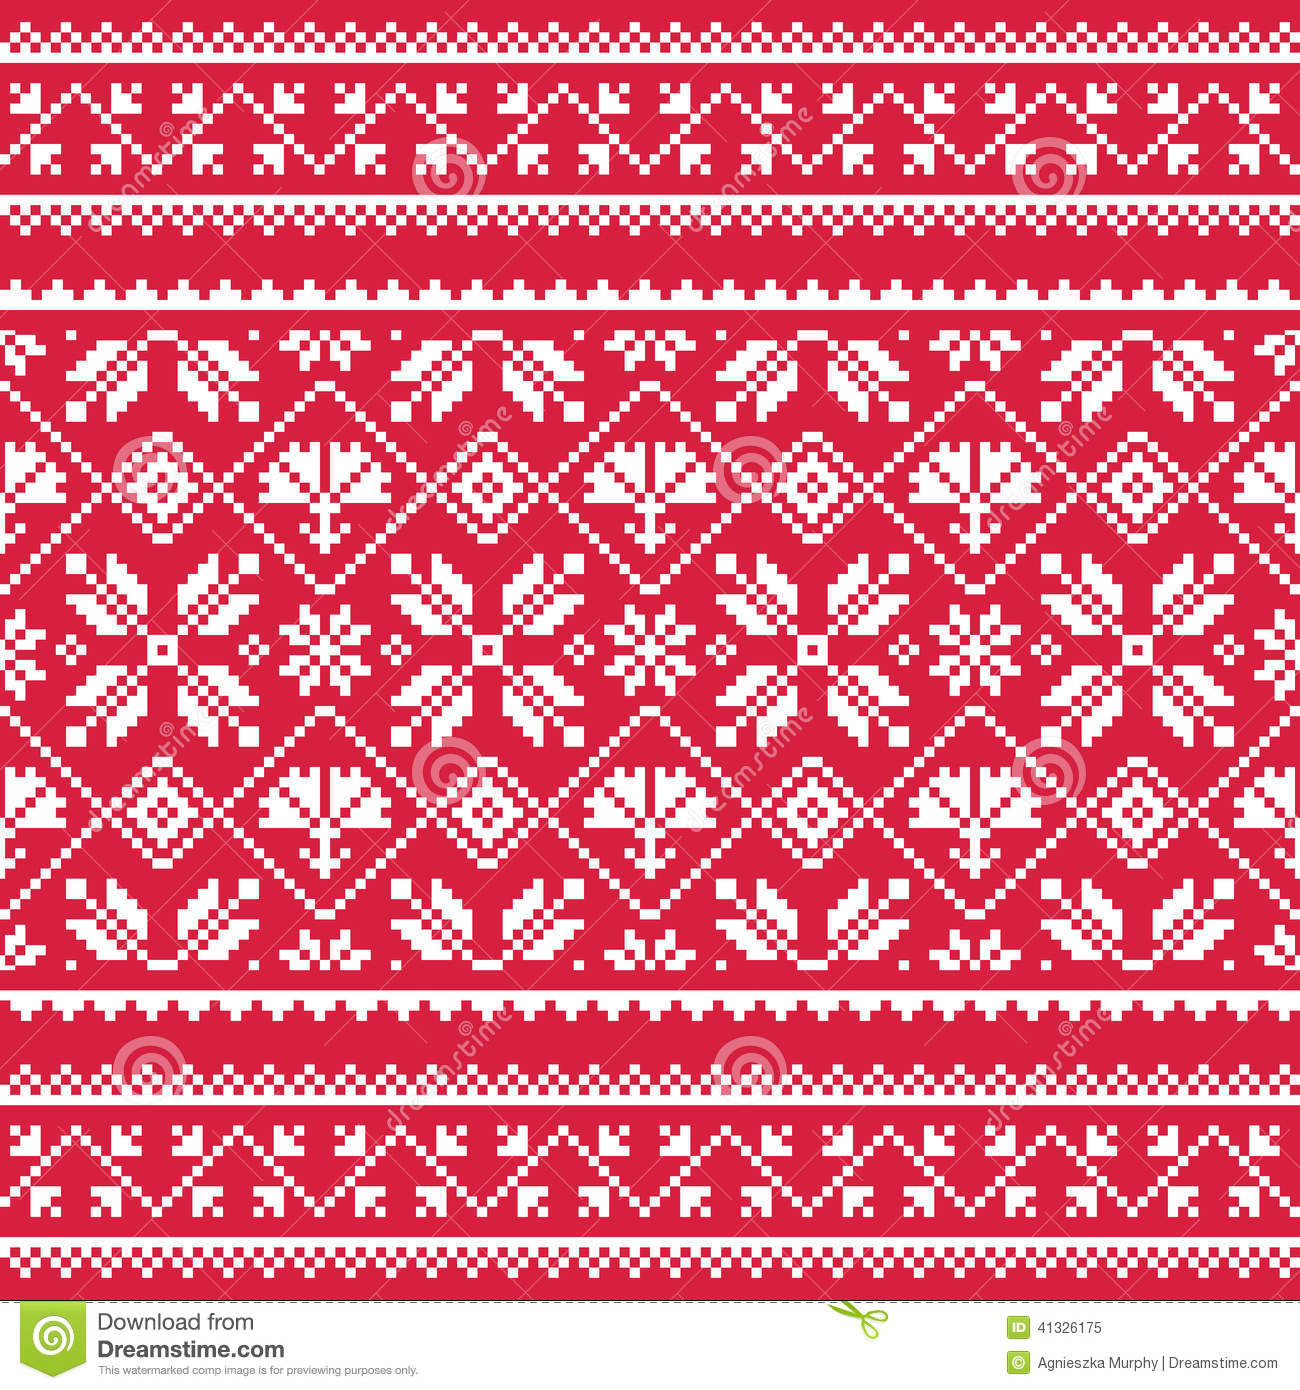 Ukrainian Slavic Folk Art White Embroidery Pattern On Red